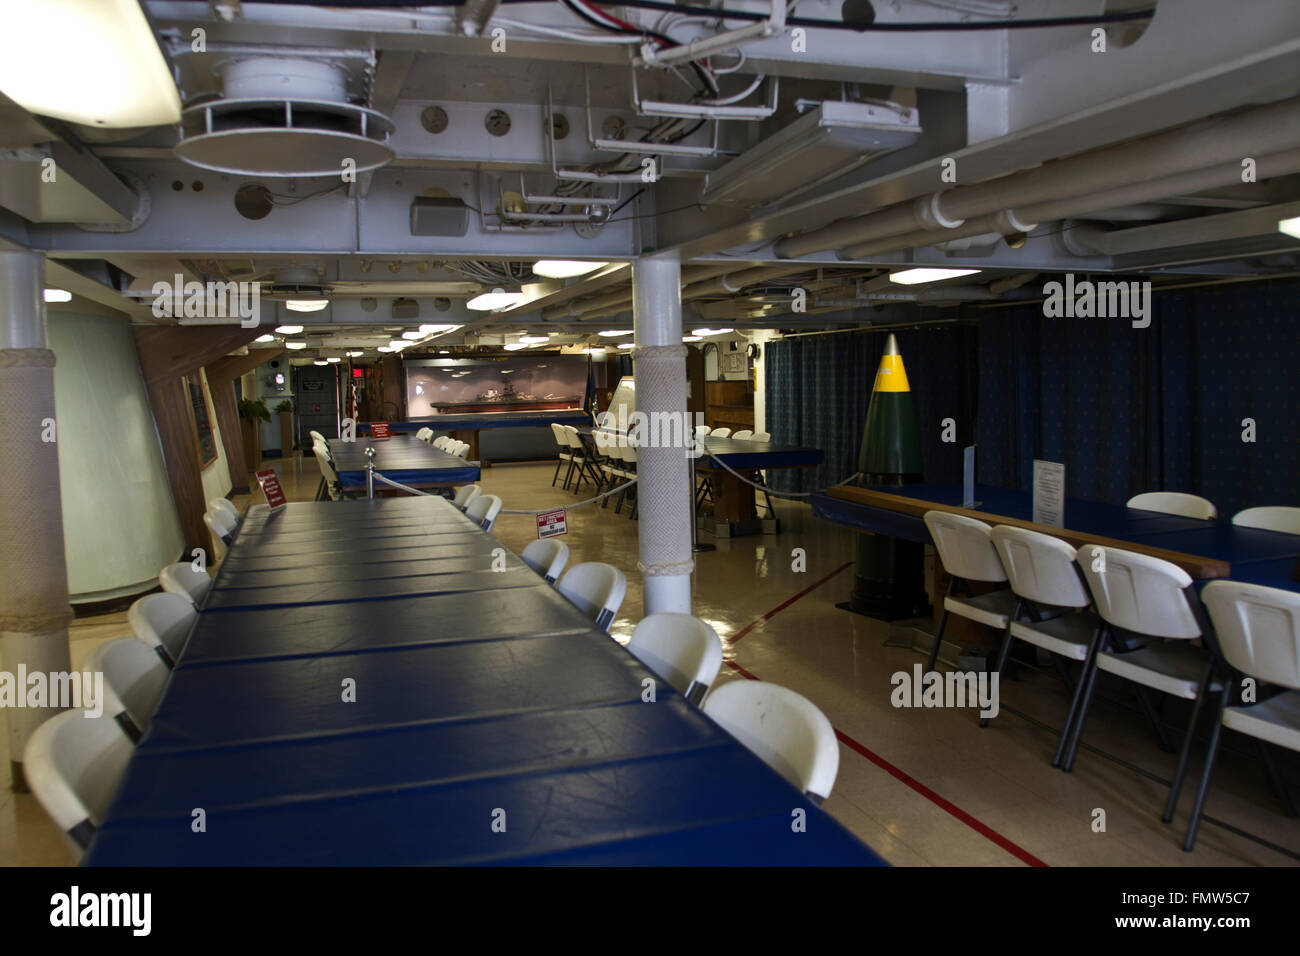 The battleship New Jersey, build in 1942 and stricken in 1999. This image shows dining facilities below decks, - Stock Image